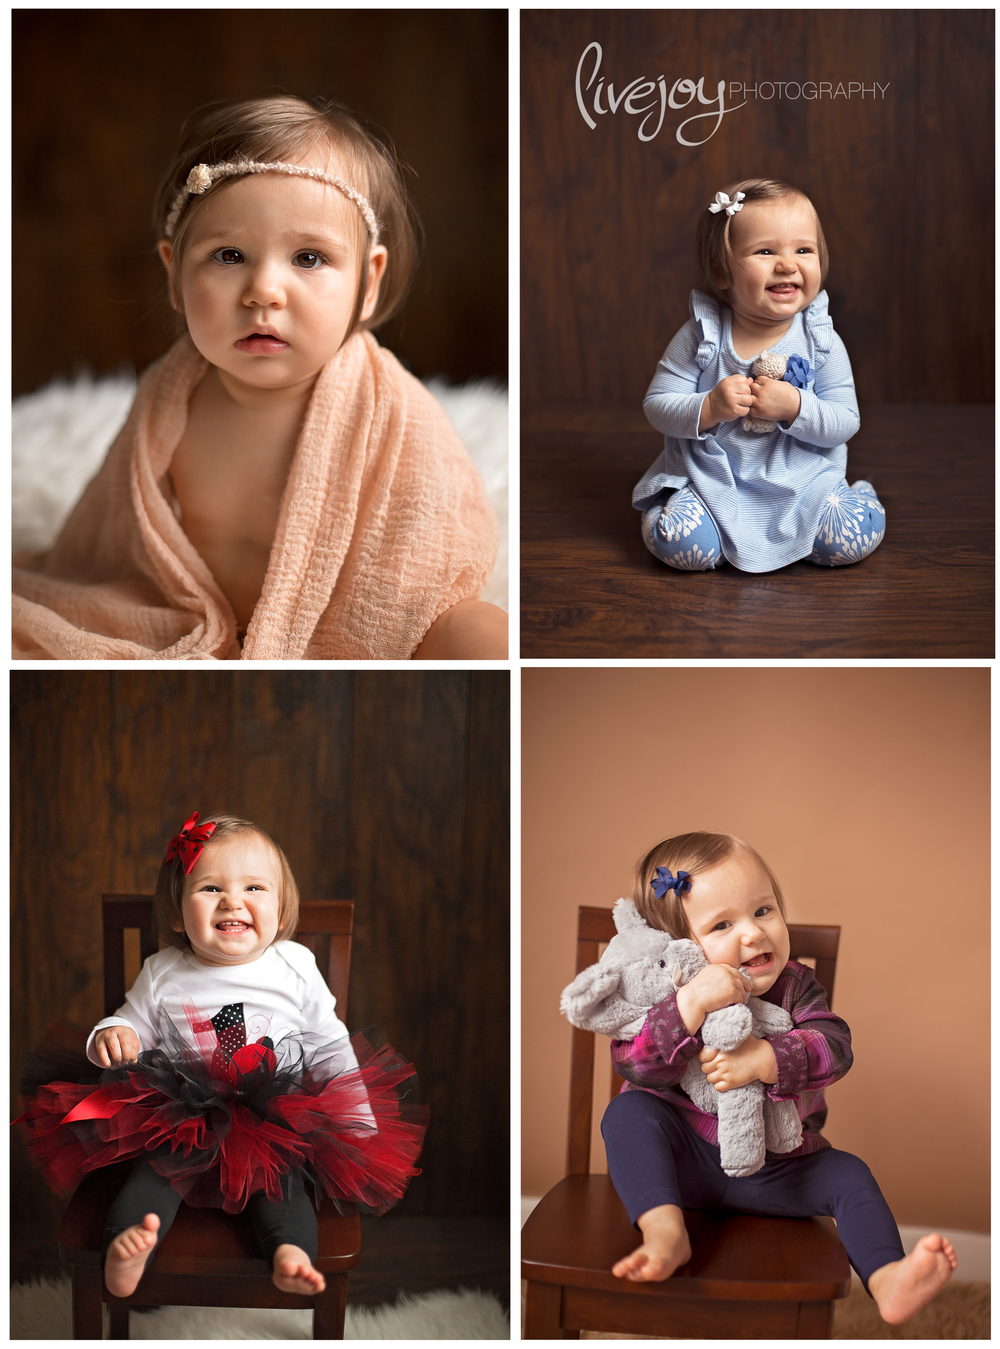 One Year Baby Photography | Oregon | LiveJoy Photography